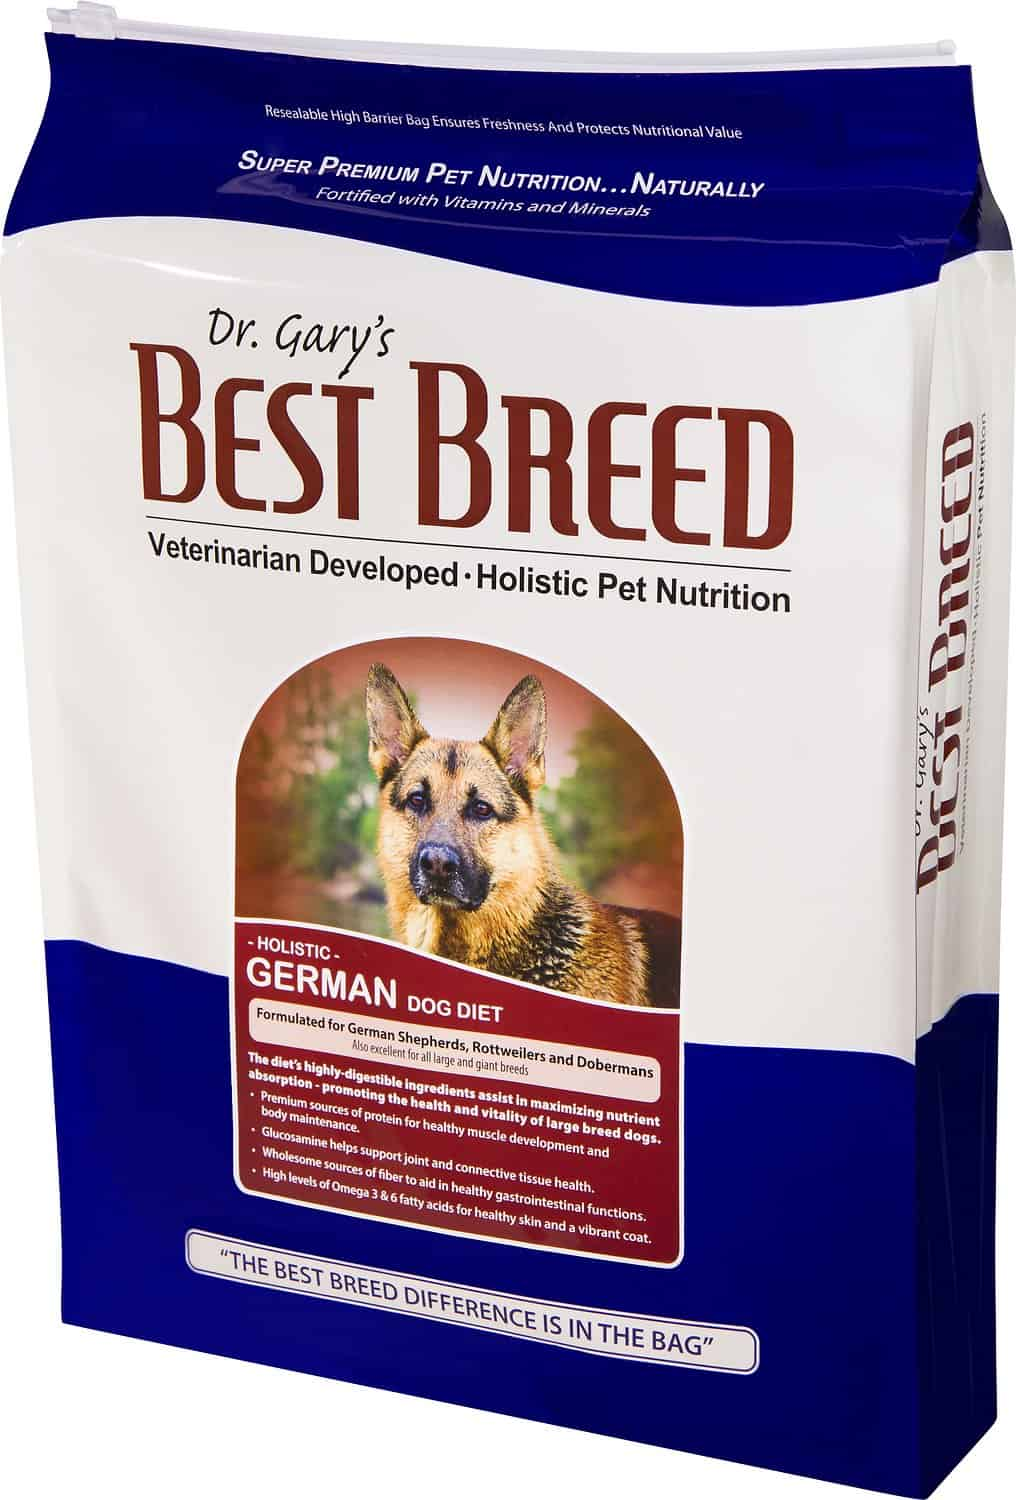 Dr. Gary's Best Breed Dog Food Review 2021: Best Holistic Pet Food? 15